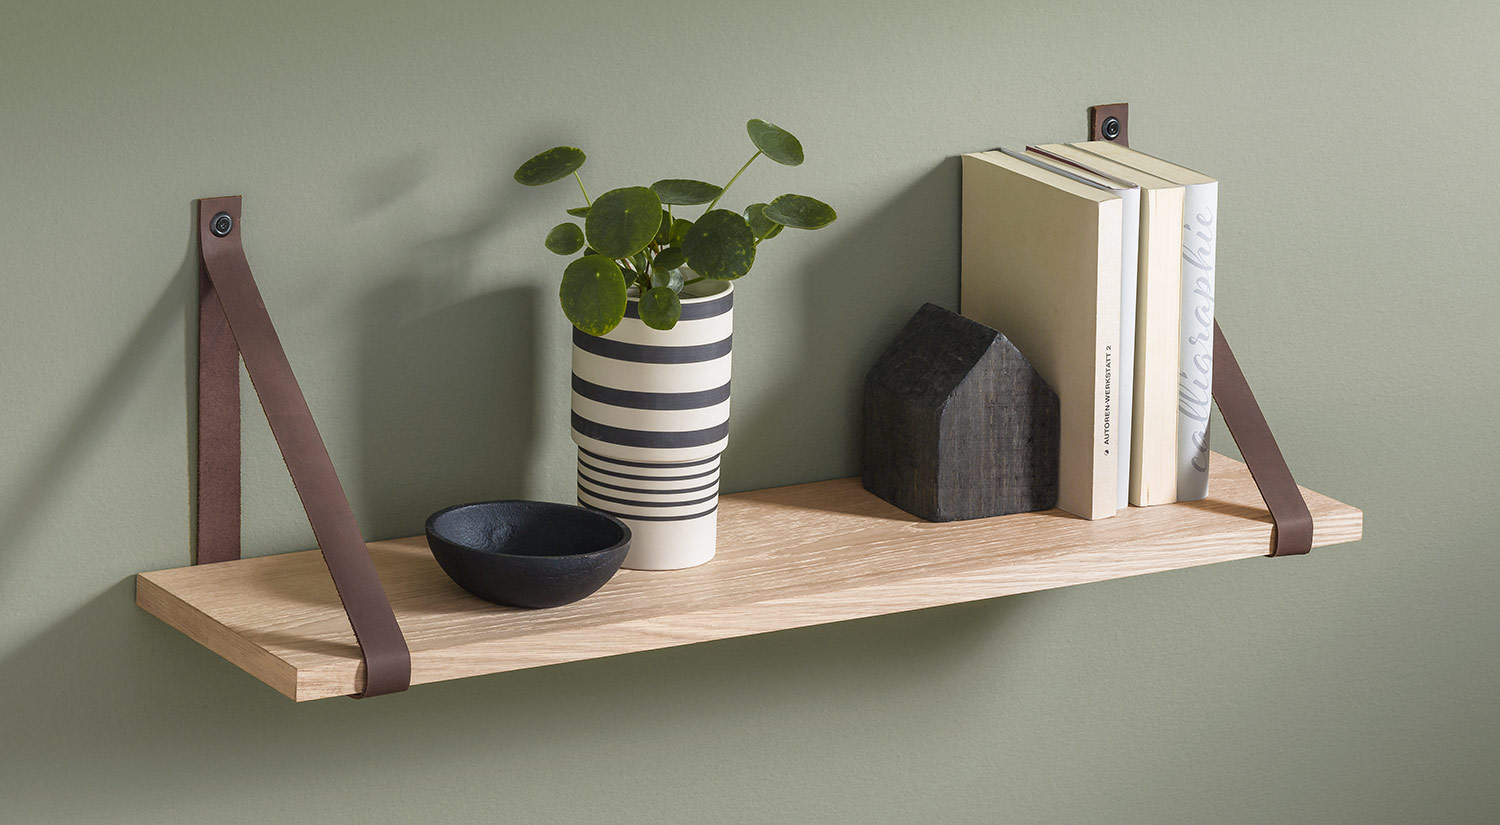 Kitchen Shelf - VINTAGE+LOOP Hanging Shelf with Leather Strap